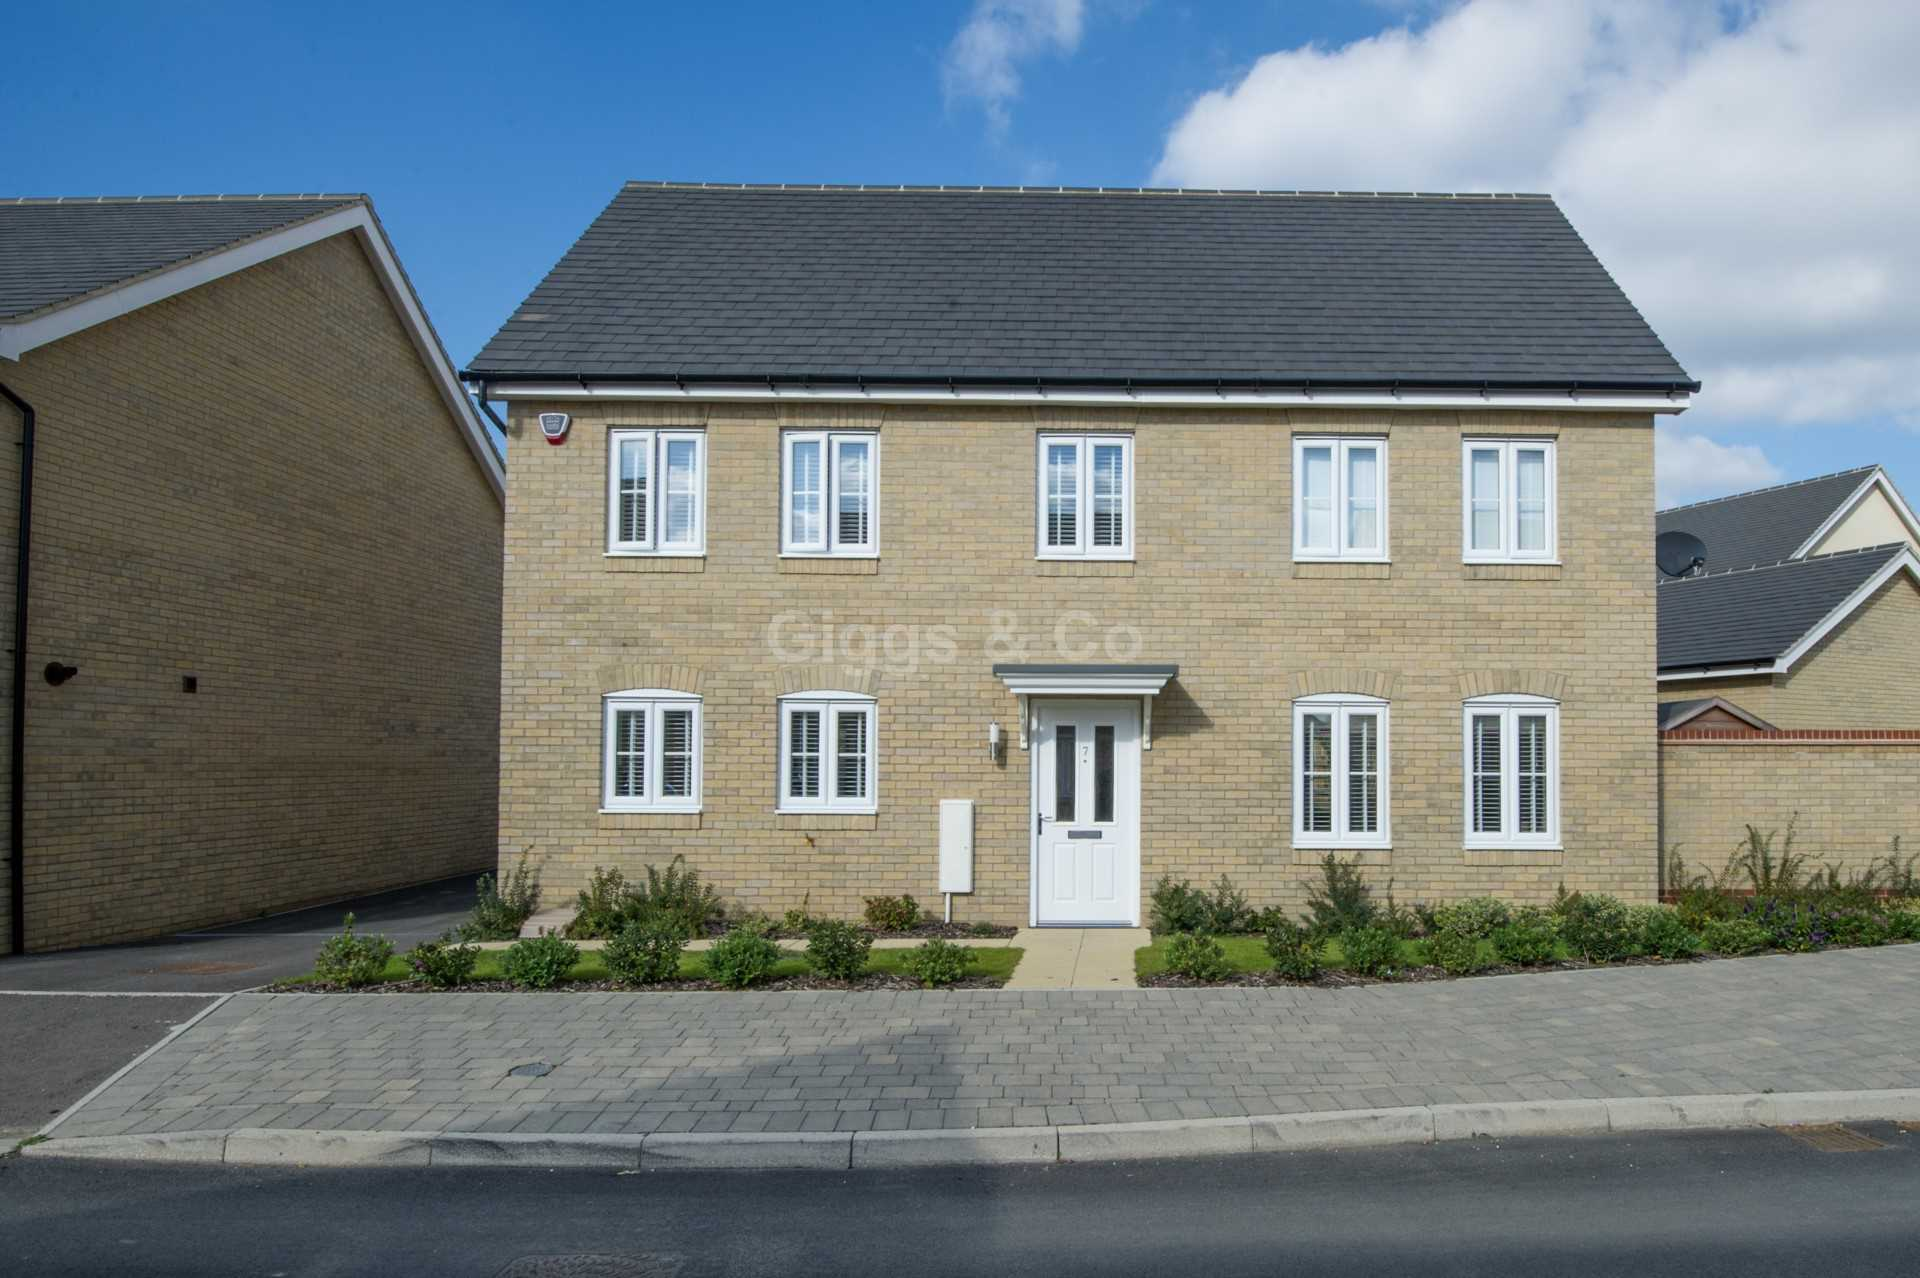 4 bed detached house to rent in Waterland, St. Neots, PE19